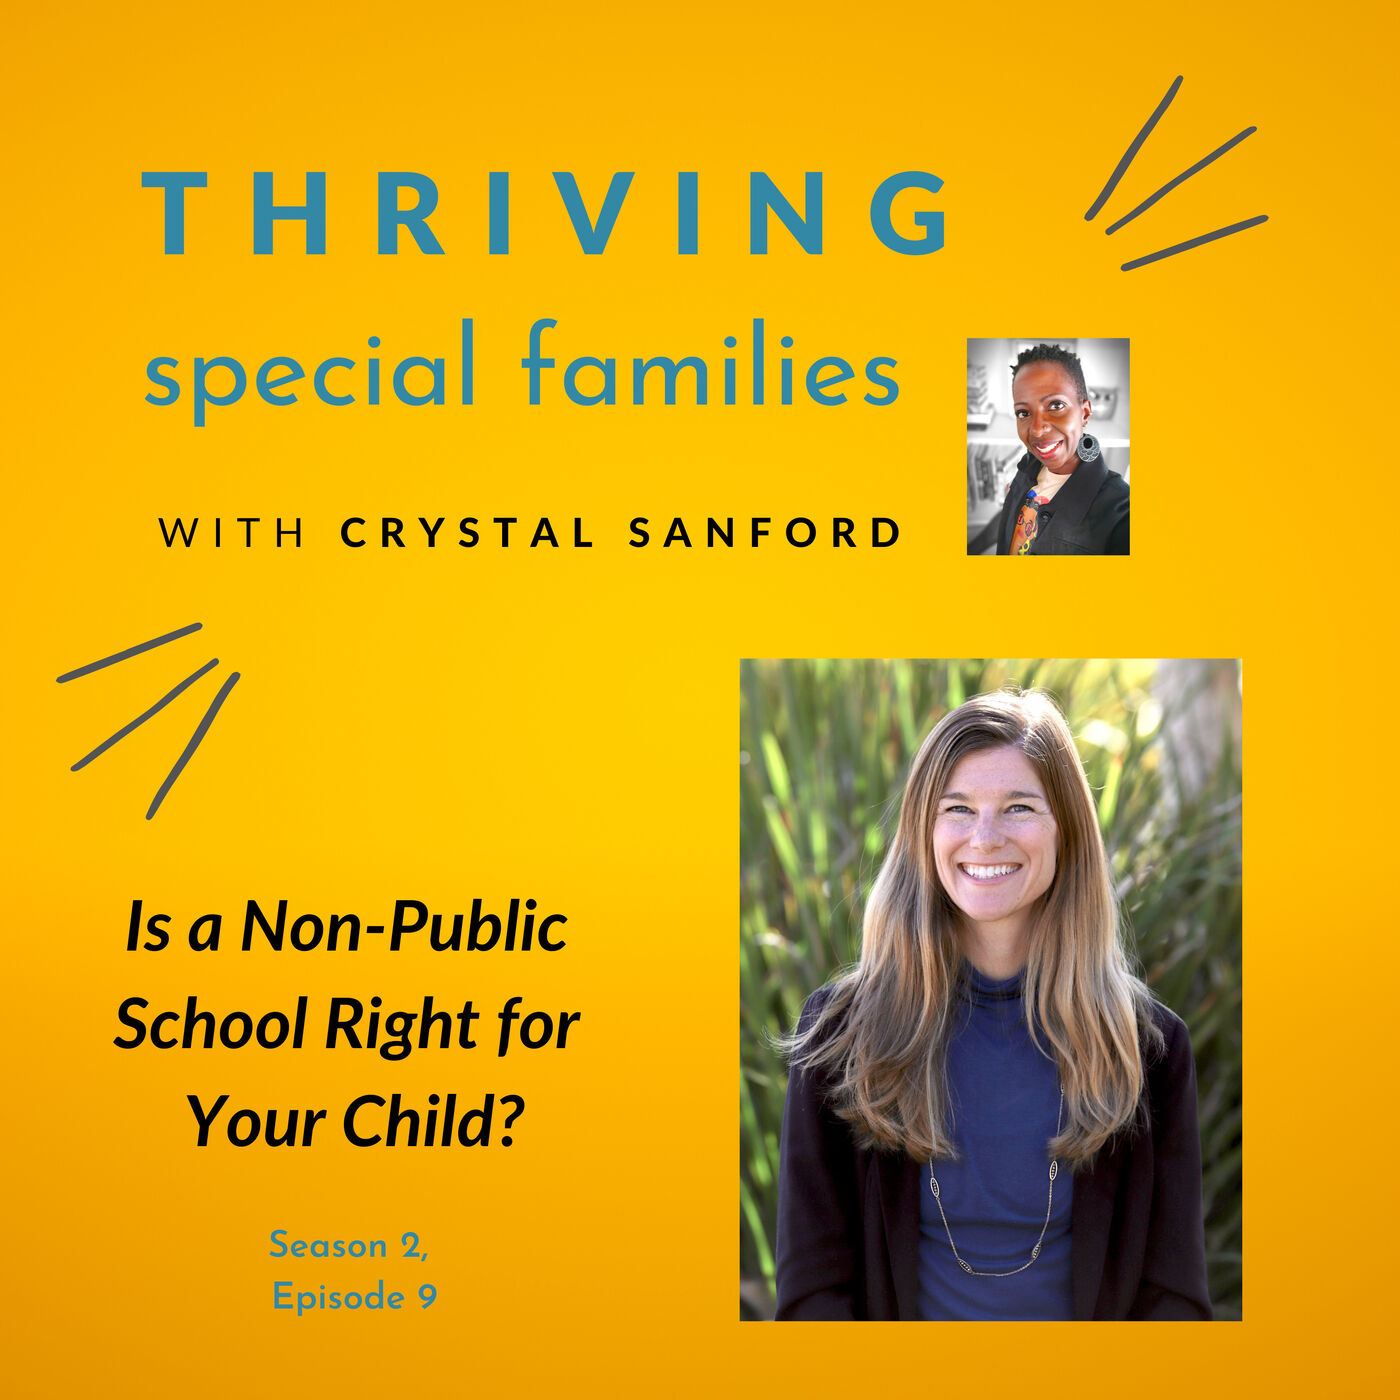 Is a Non Public School Right for Your Child